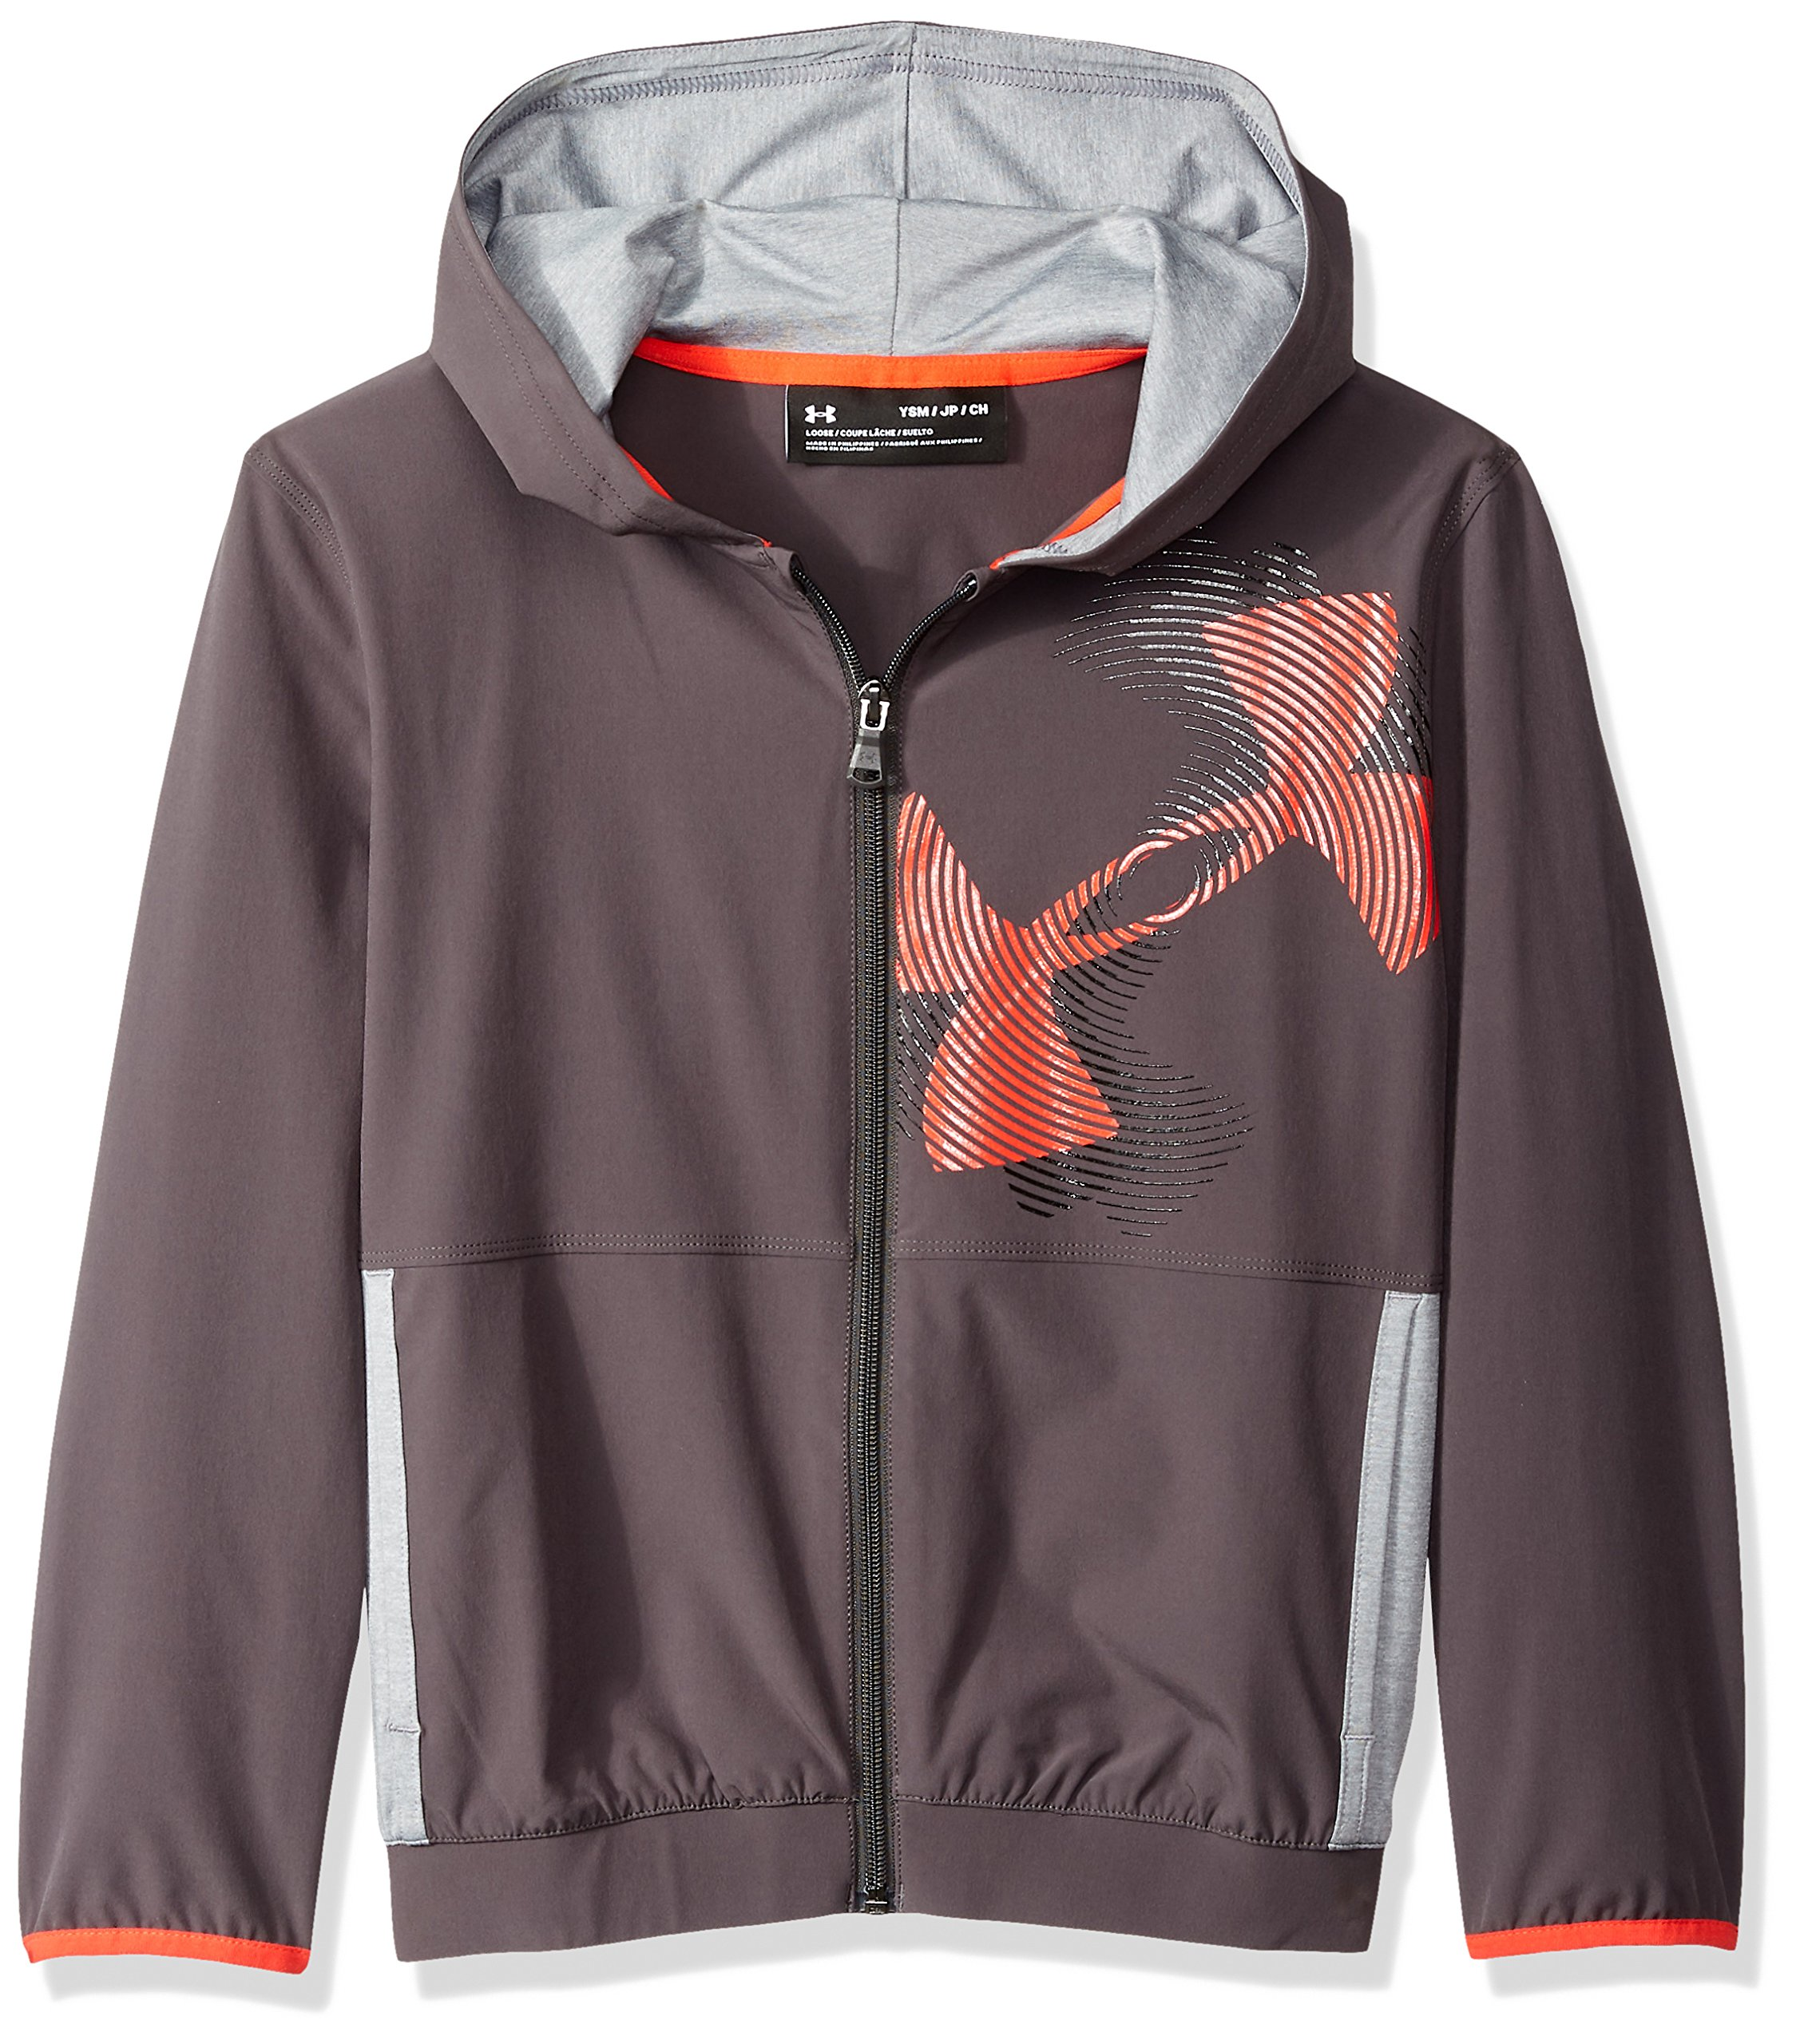 Under Armour Boys Woven Warm Up Jacket, Charcoal (019)/Radio Red, Youth X-Small